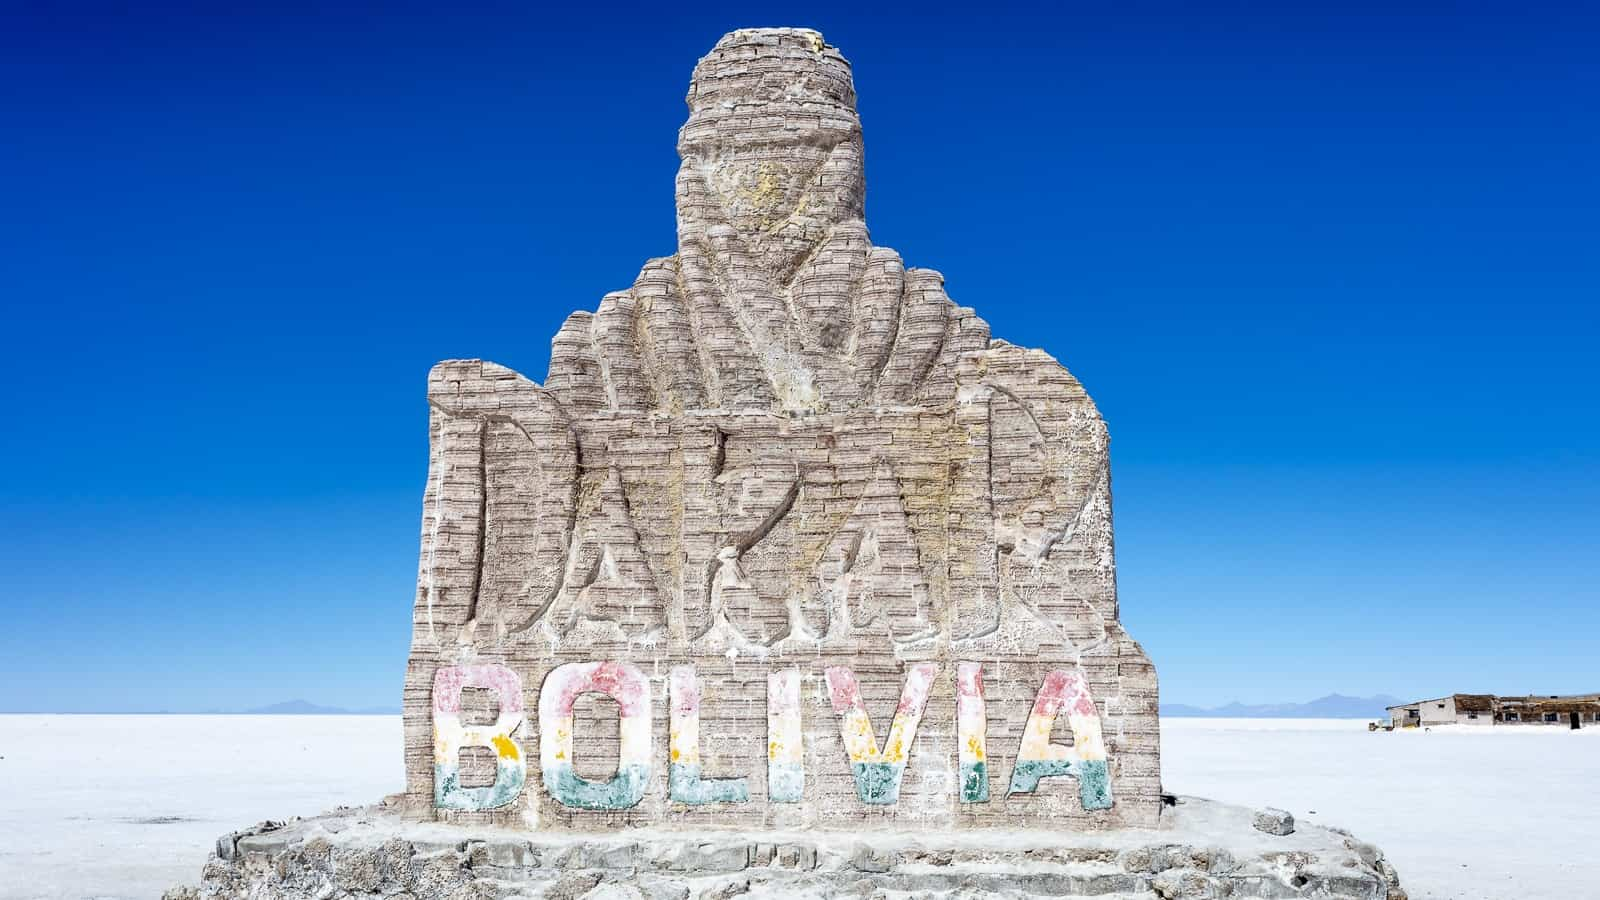 Use our Bolivia travel guide to plan your overland adventure through this adventurous South American country. Travelling at your own pace is the best way to see Bolivia.